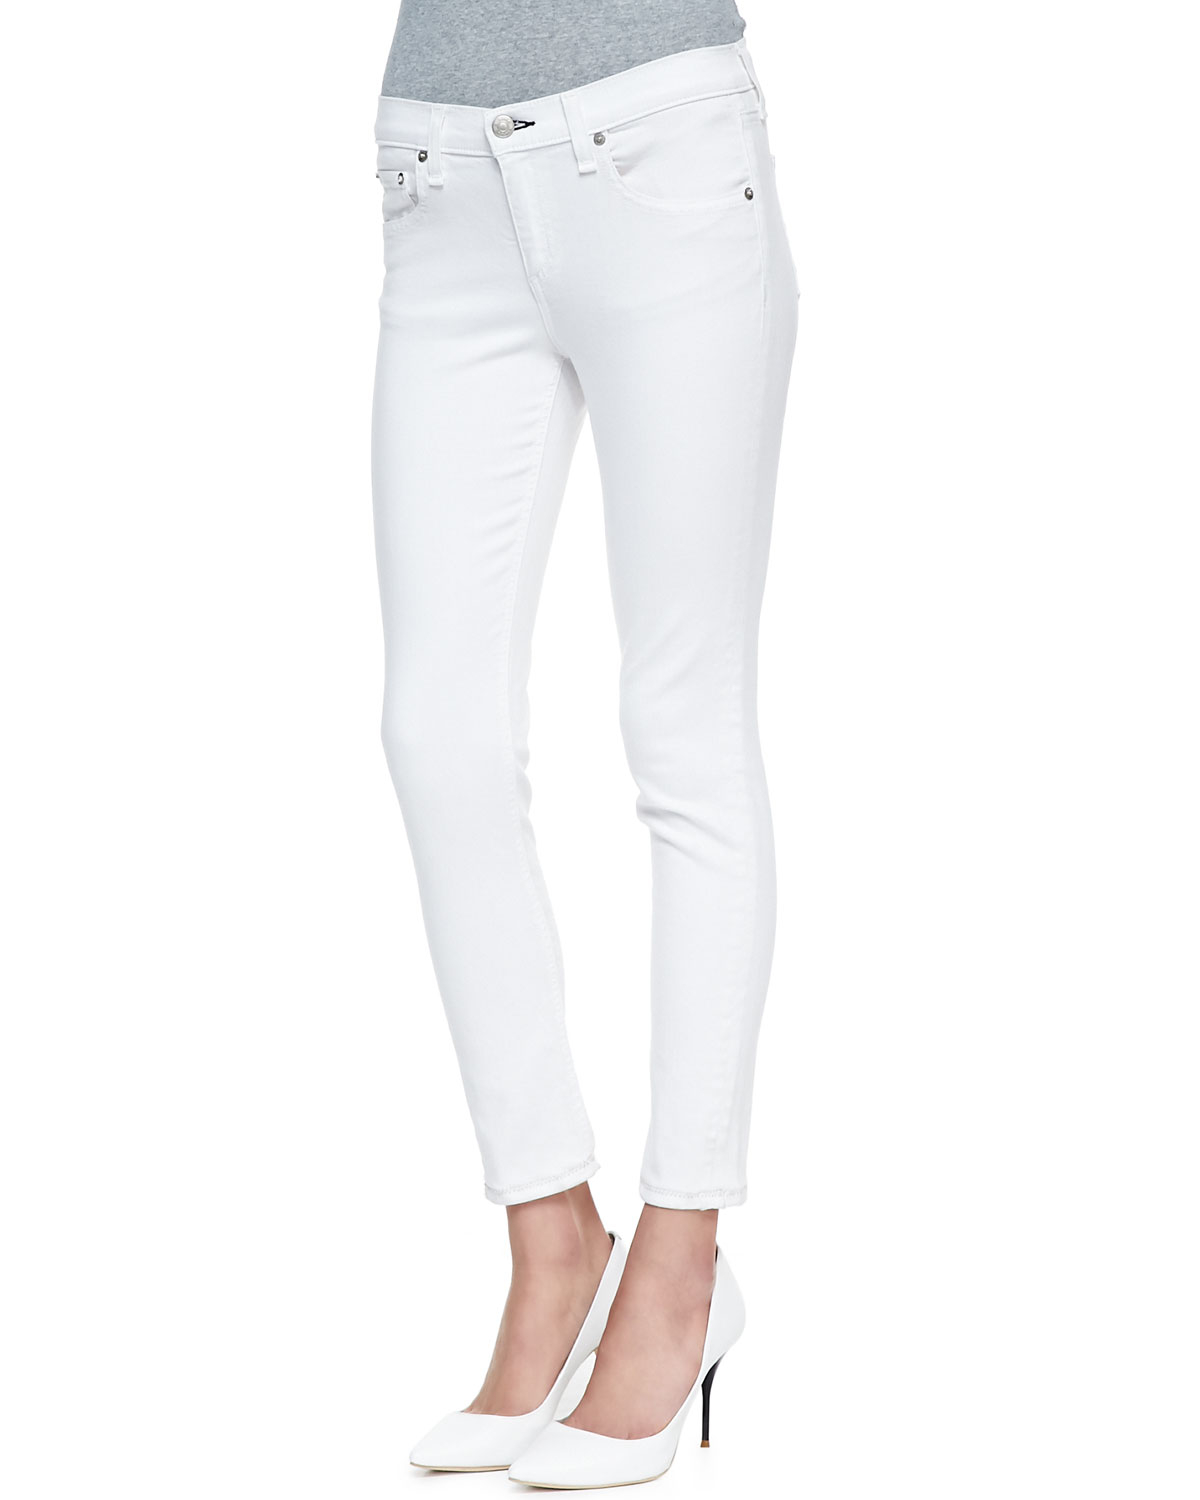 Rag & bone Repair Denim Capri Pants Bright White 24 in White | Lyst